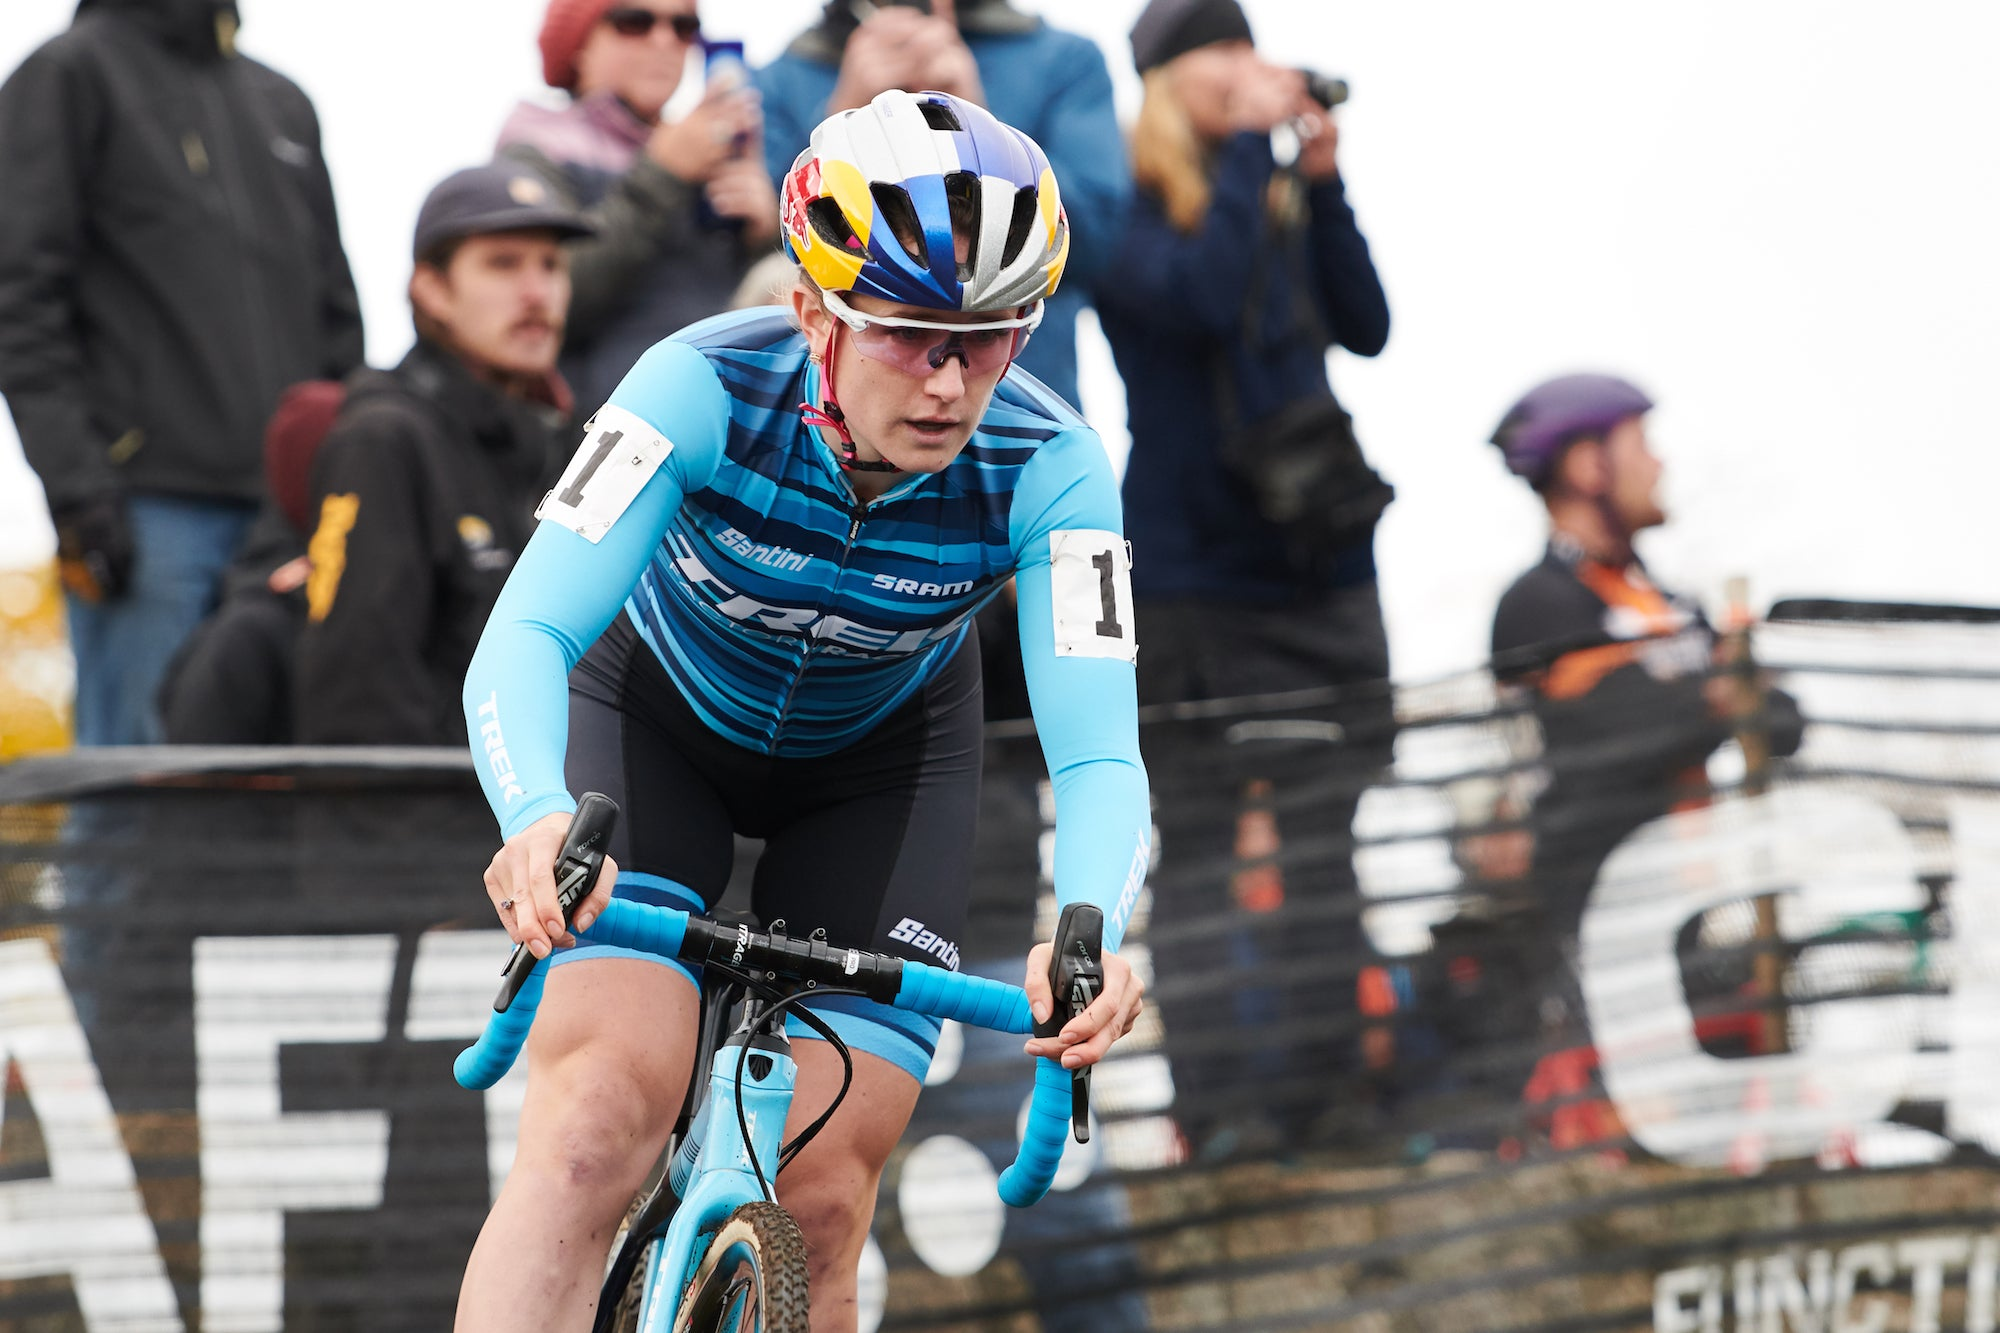 GP Gloucester: White edges four-man final lap, Noble dominates from the start